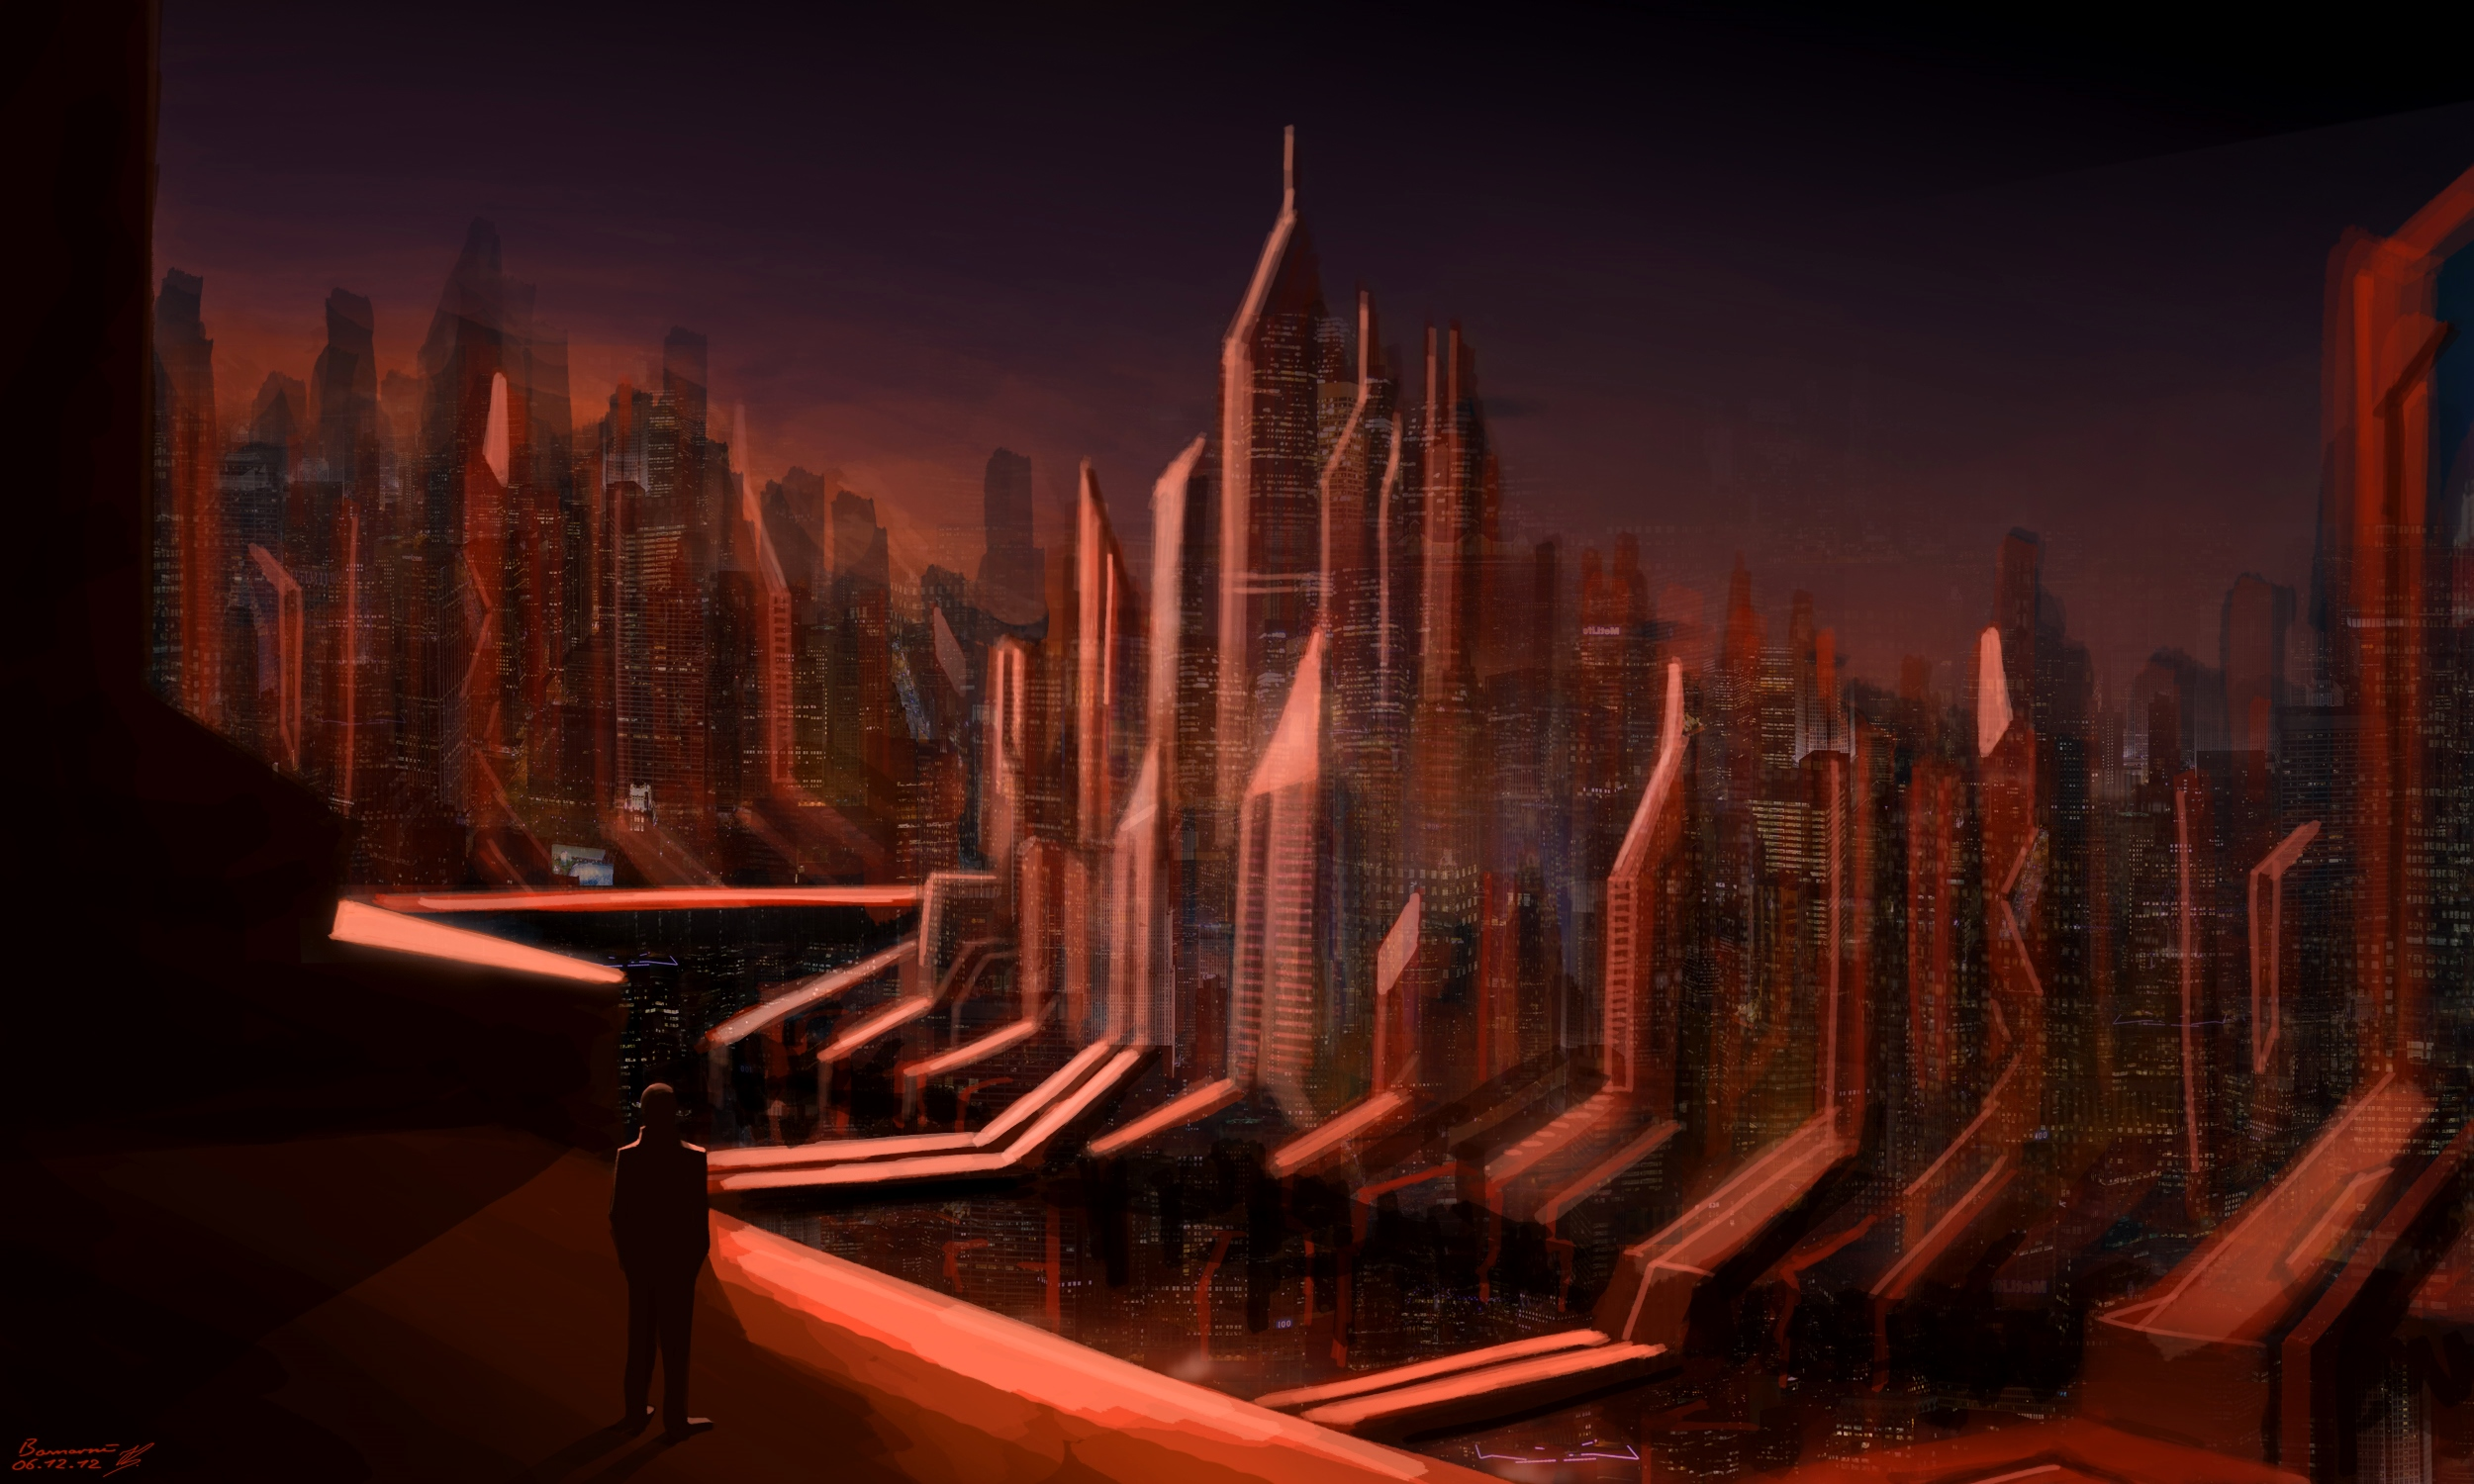 Red City 2 by LoccoRico